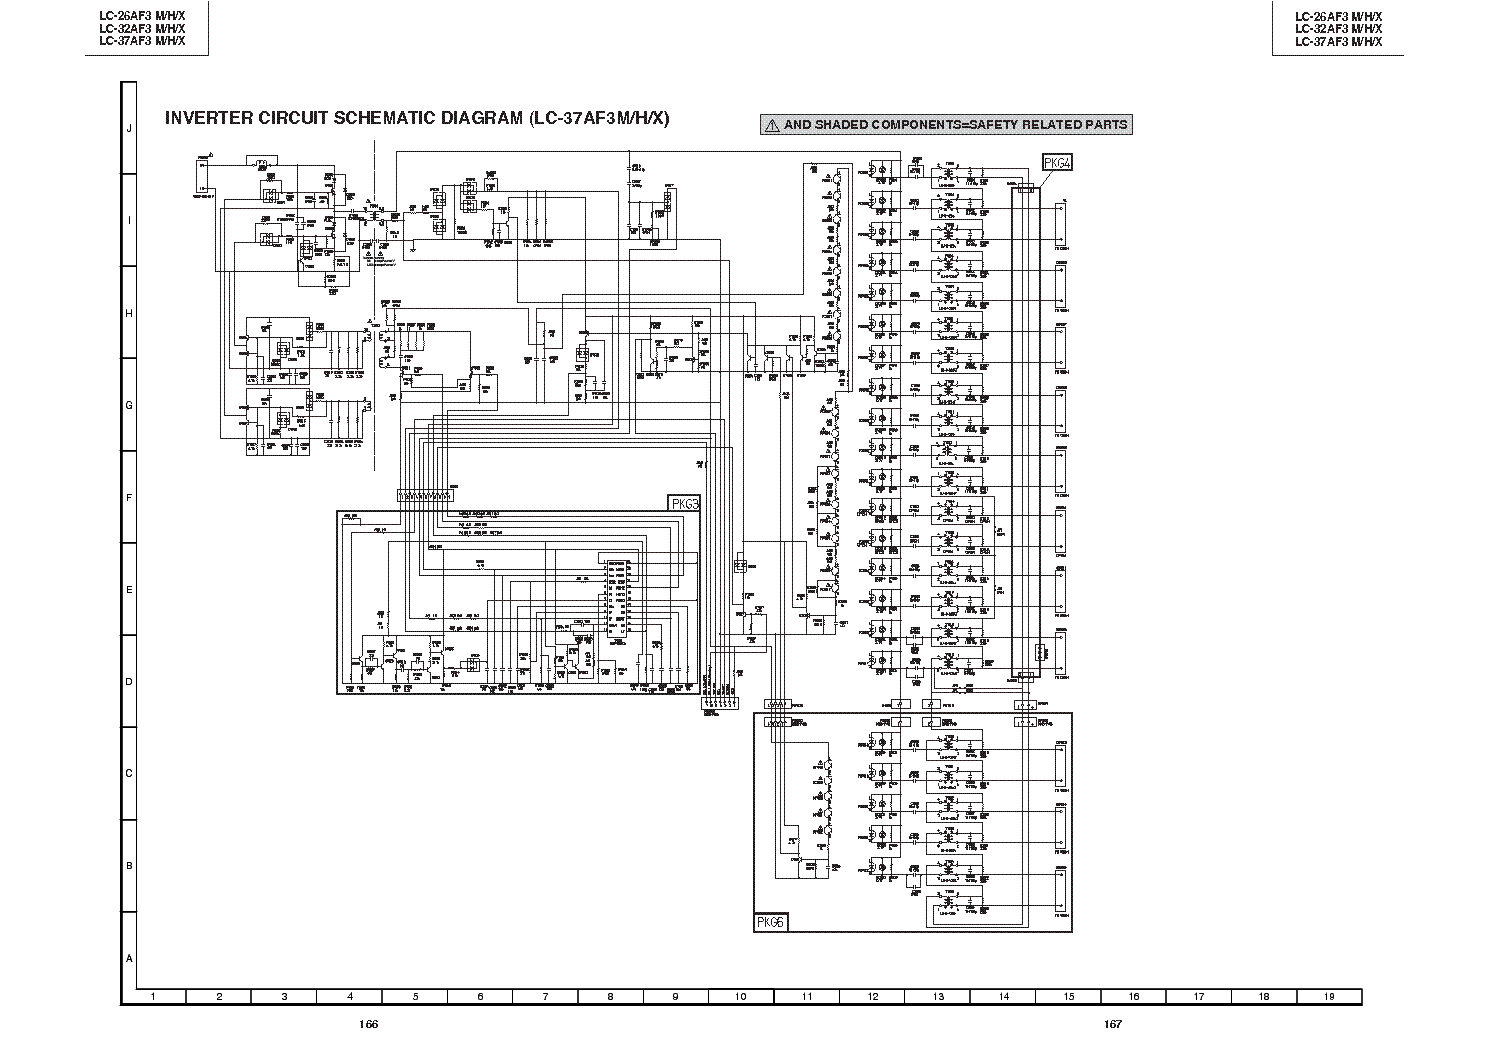 SHARP UX-45 UX-67 Service Manual download, schematics